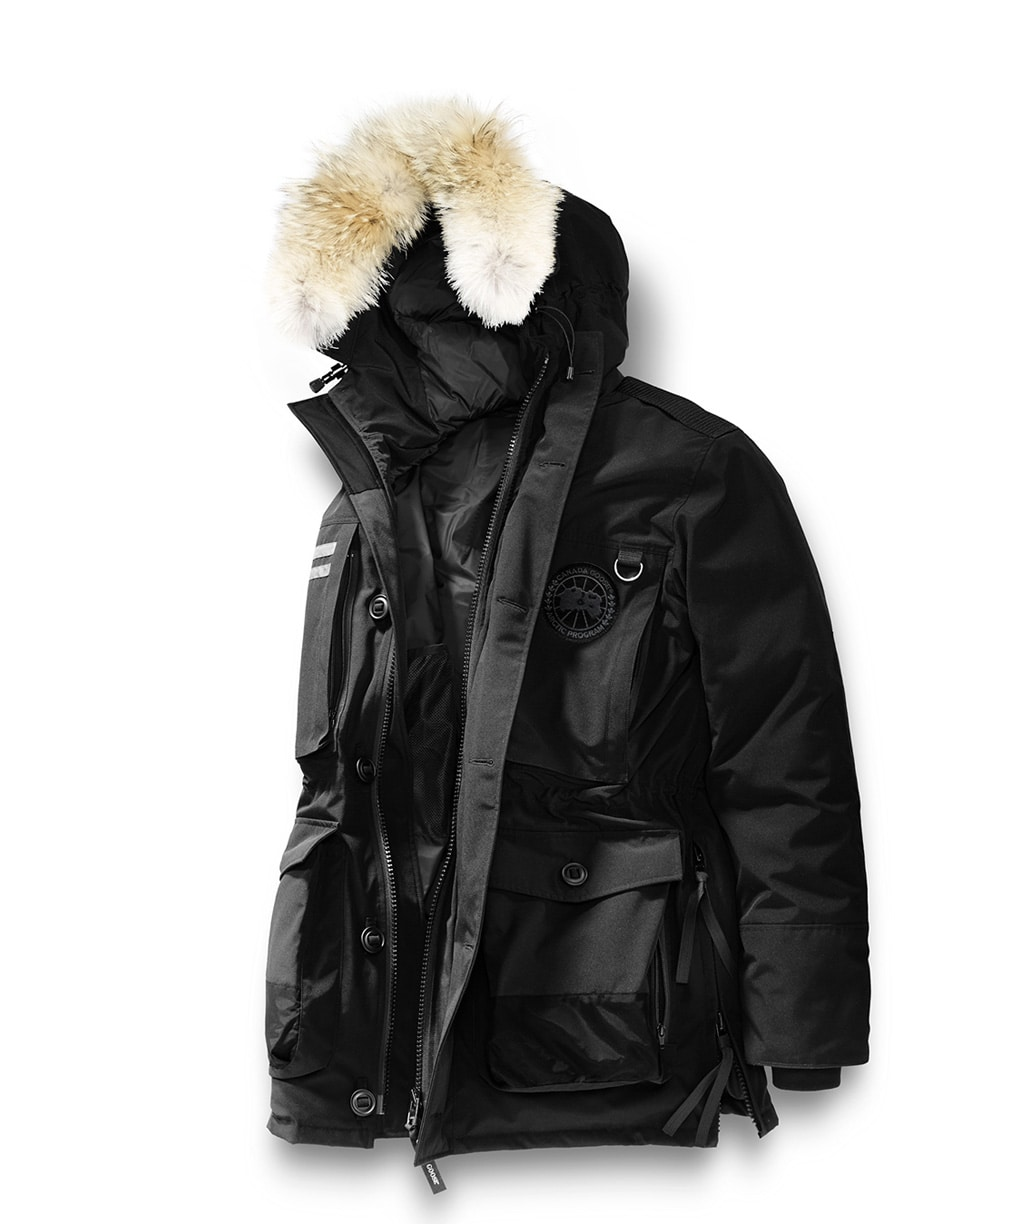 MACCULLOUCH PARKA BLACK LABEL